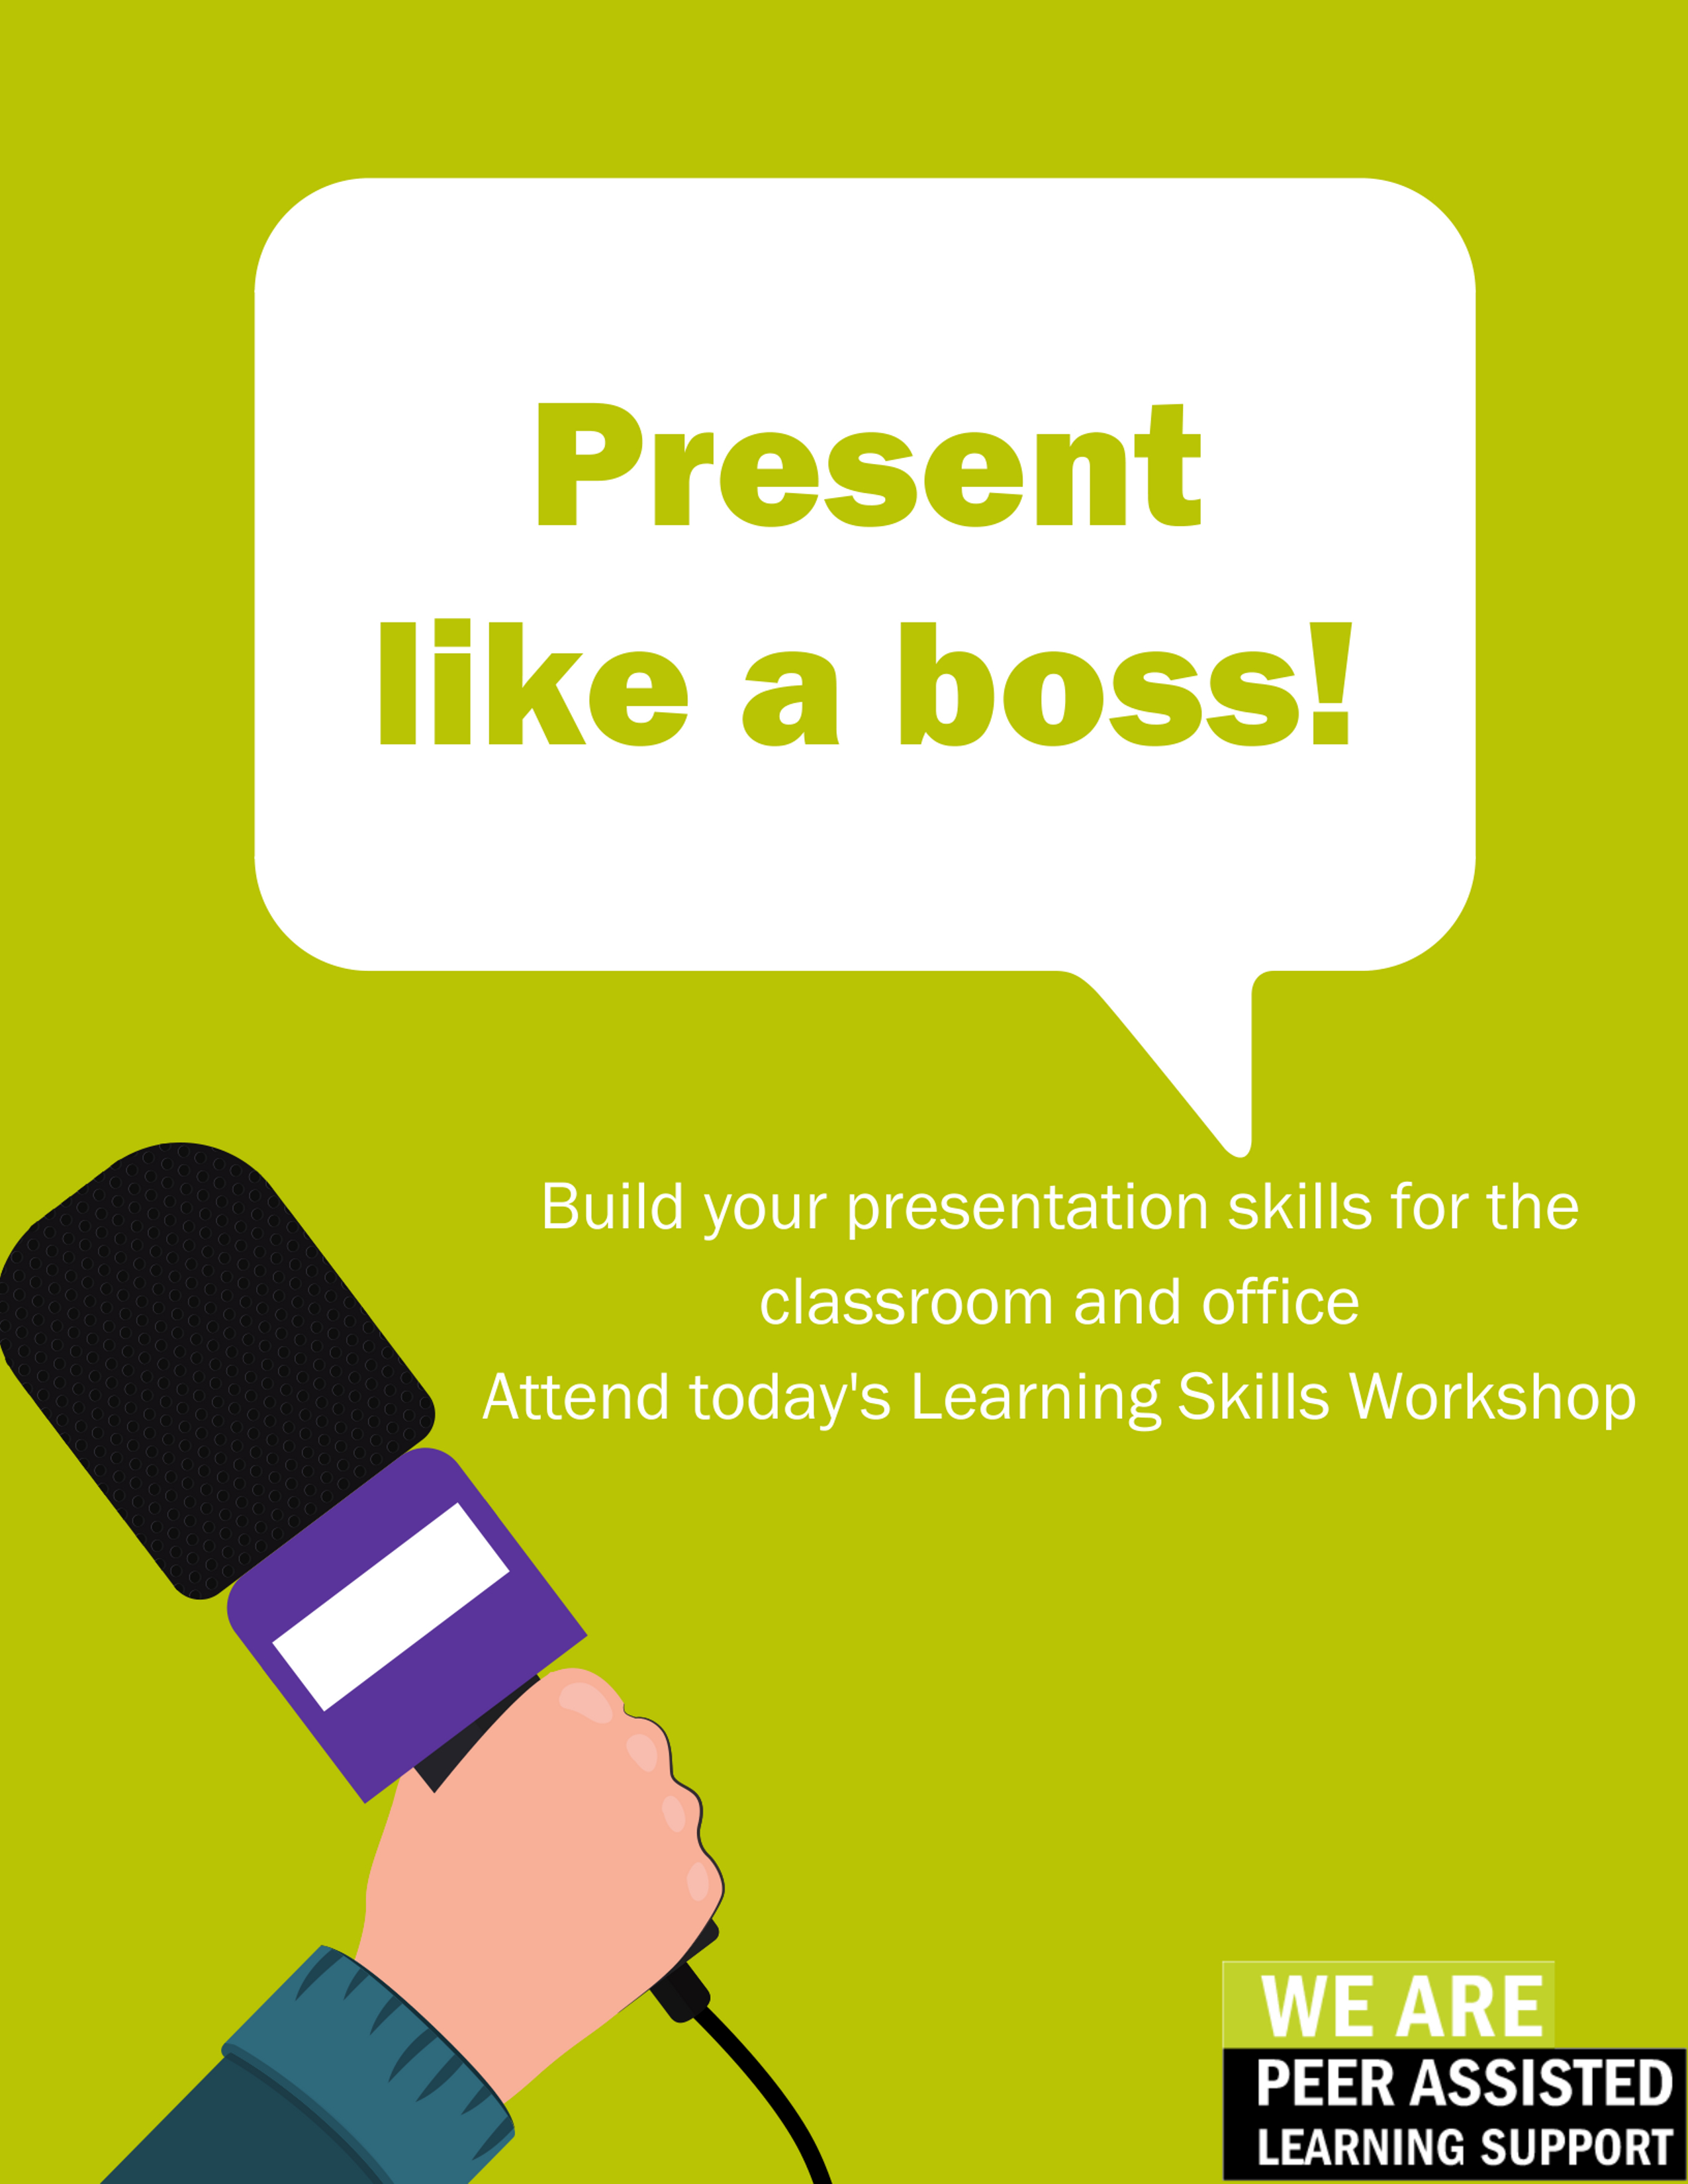 Learn how to present like a boss and build on your presentation skills.